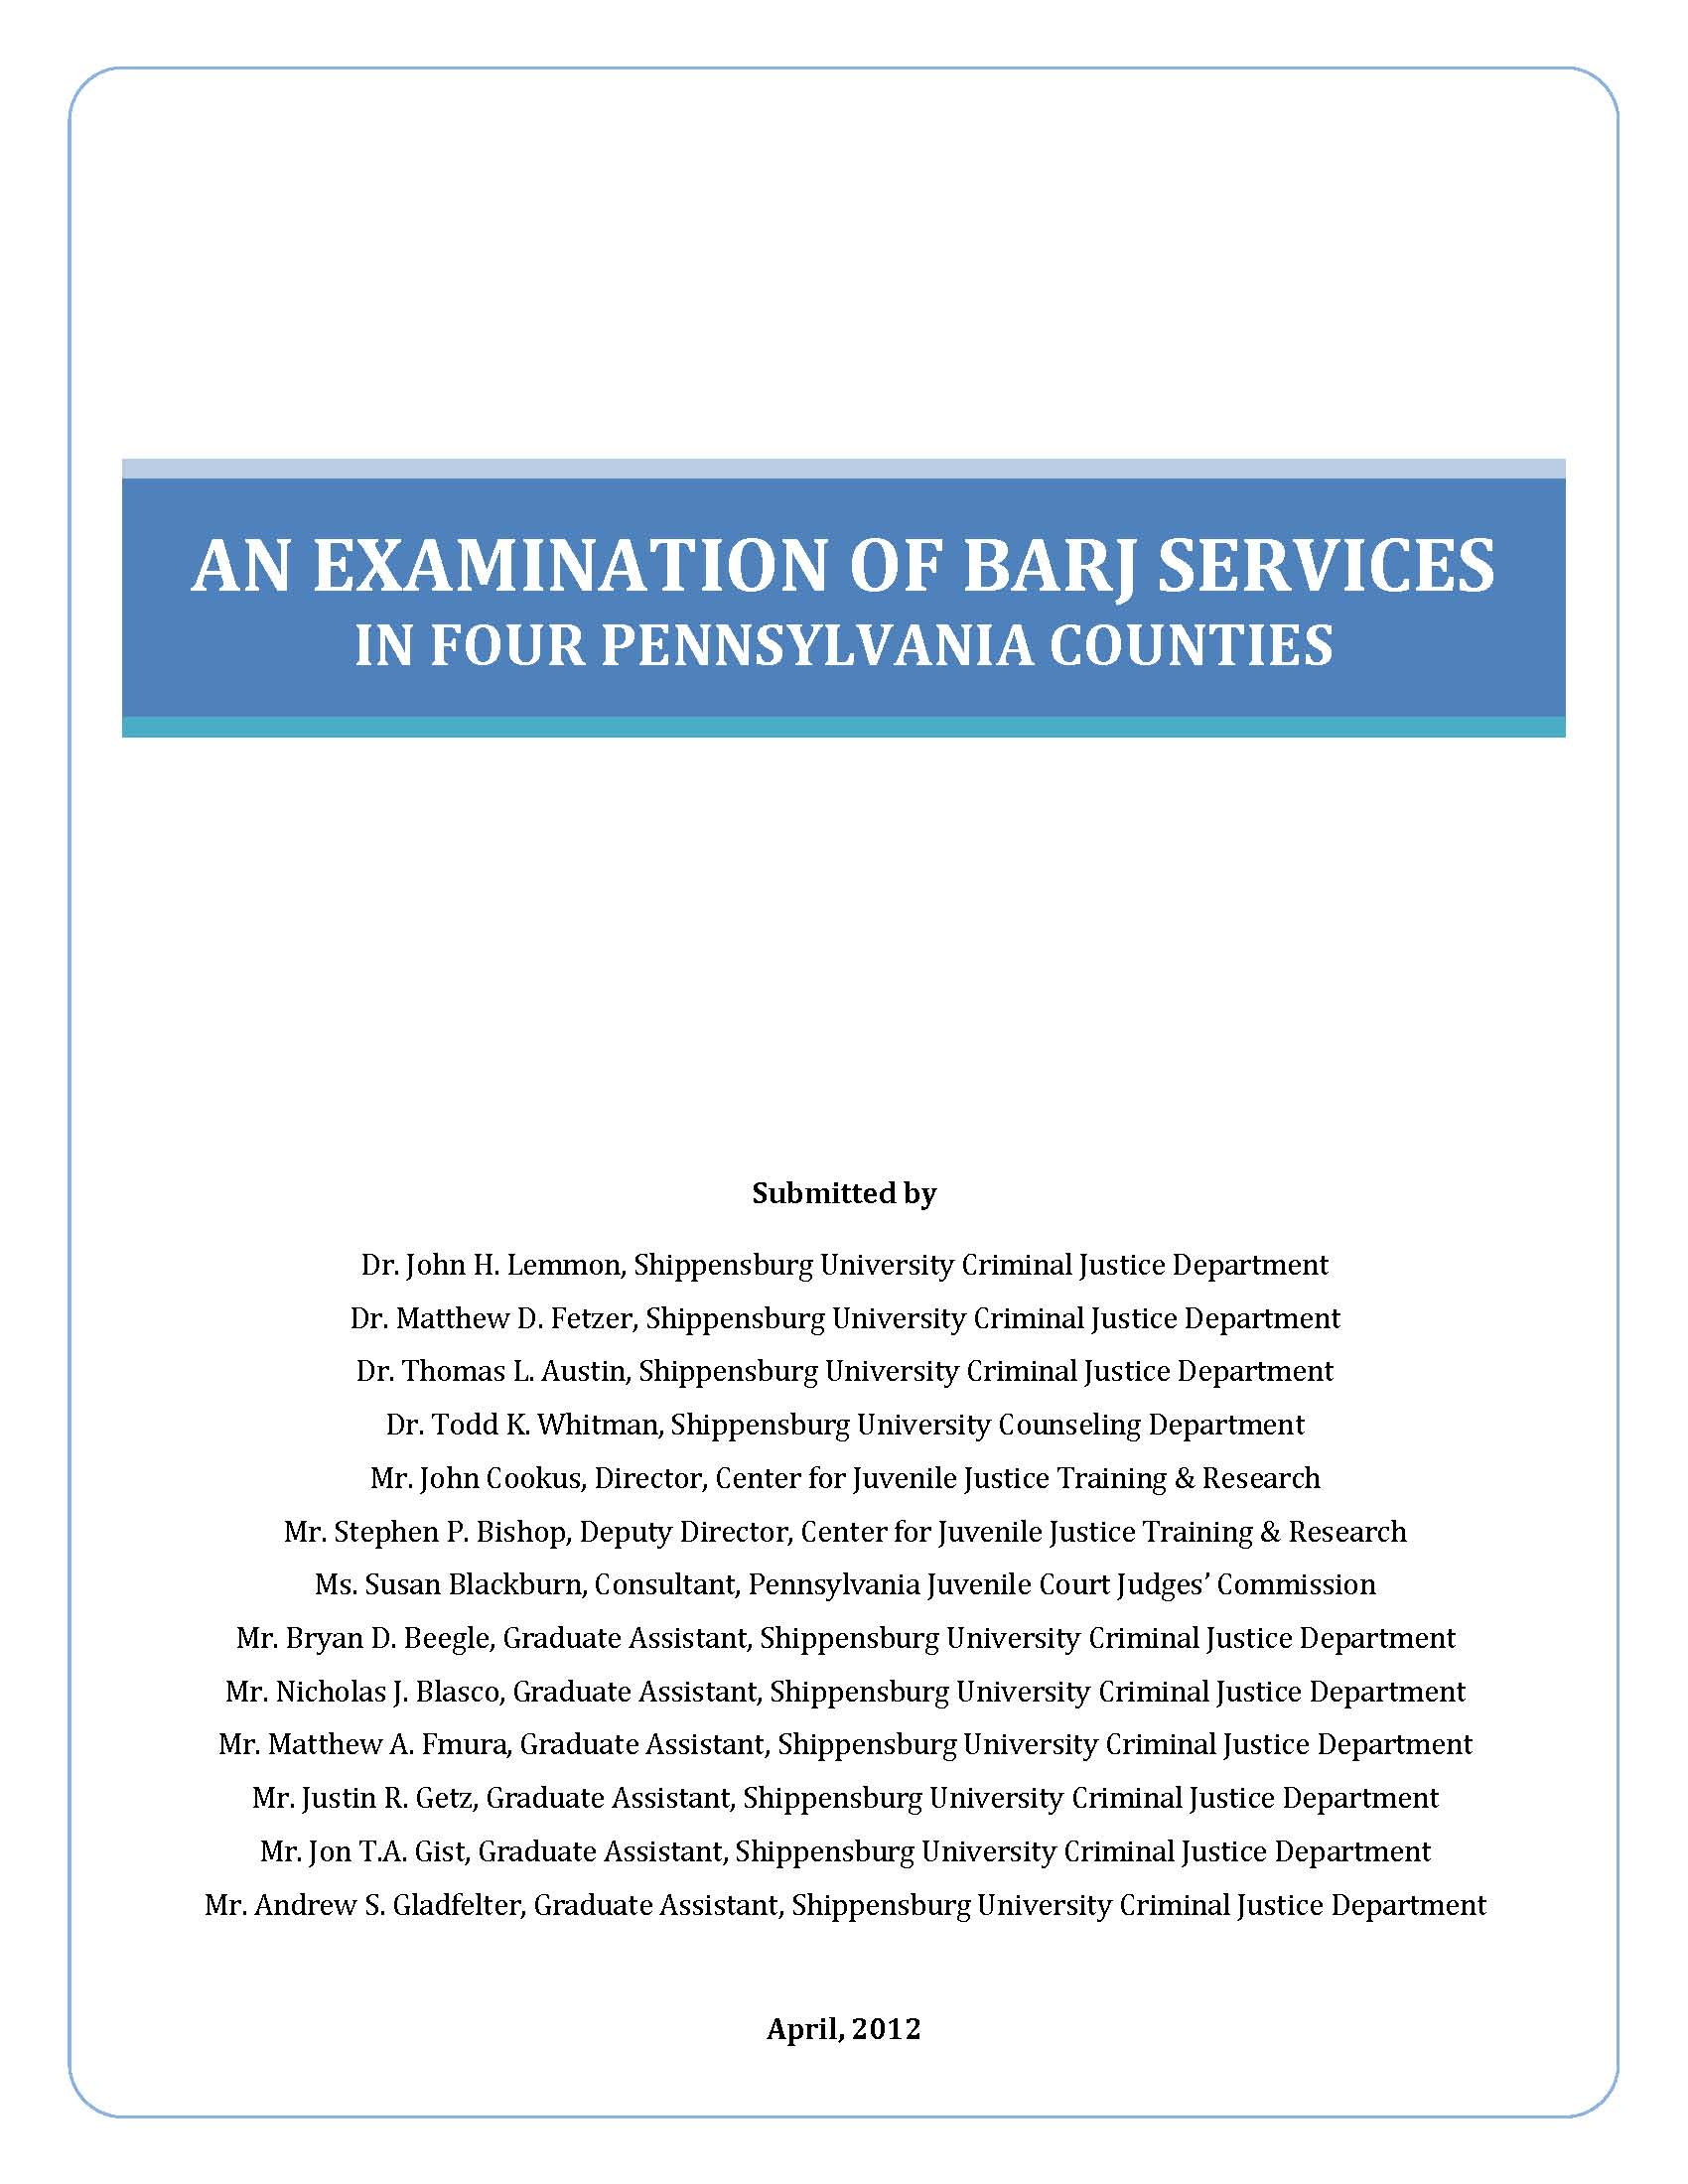 an_examination_of_barj_services_image.jpg